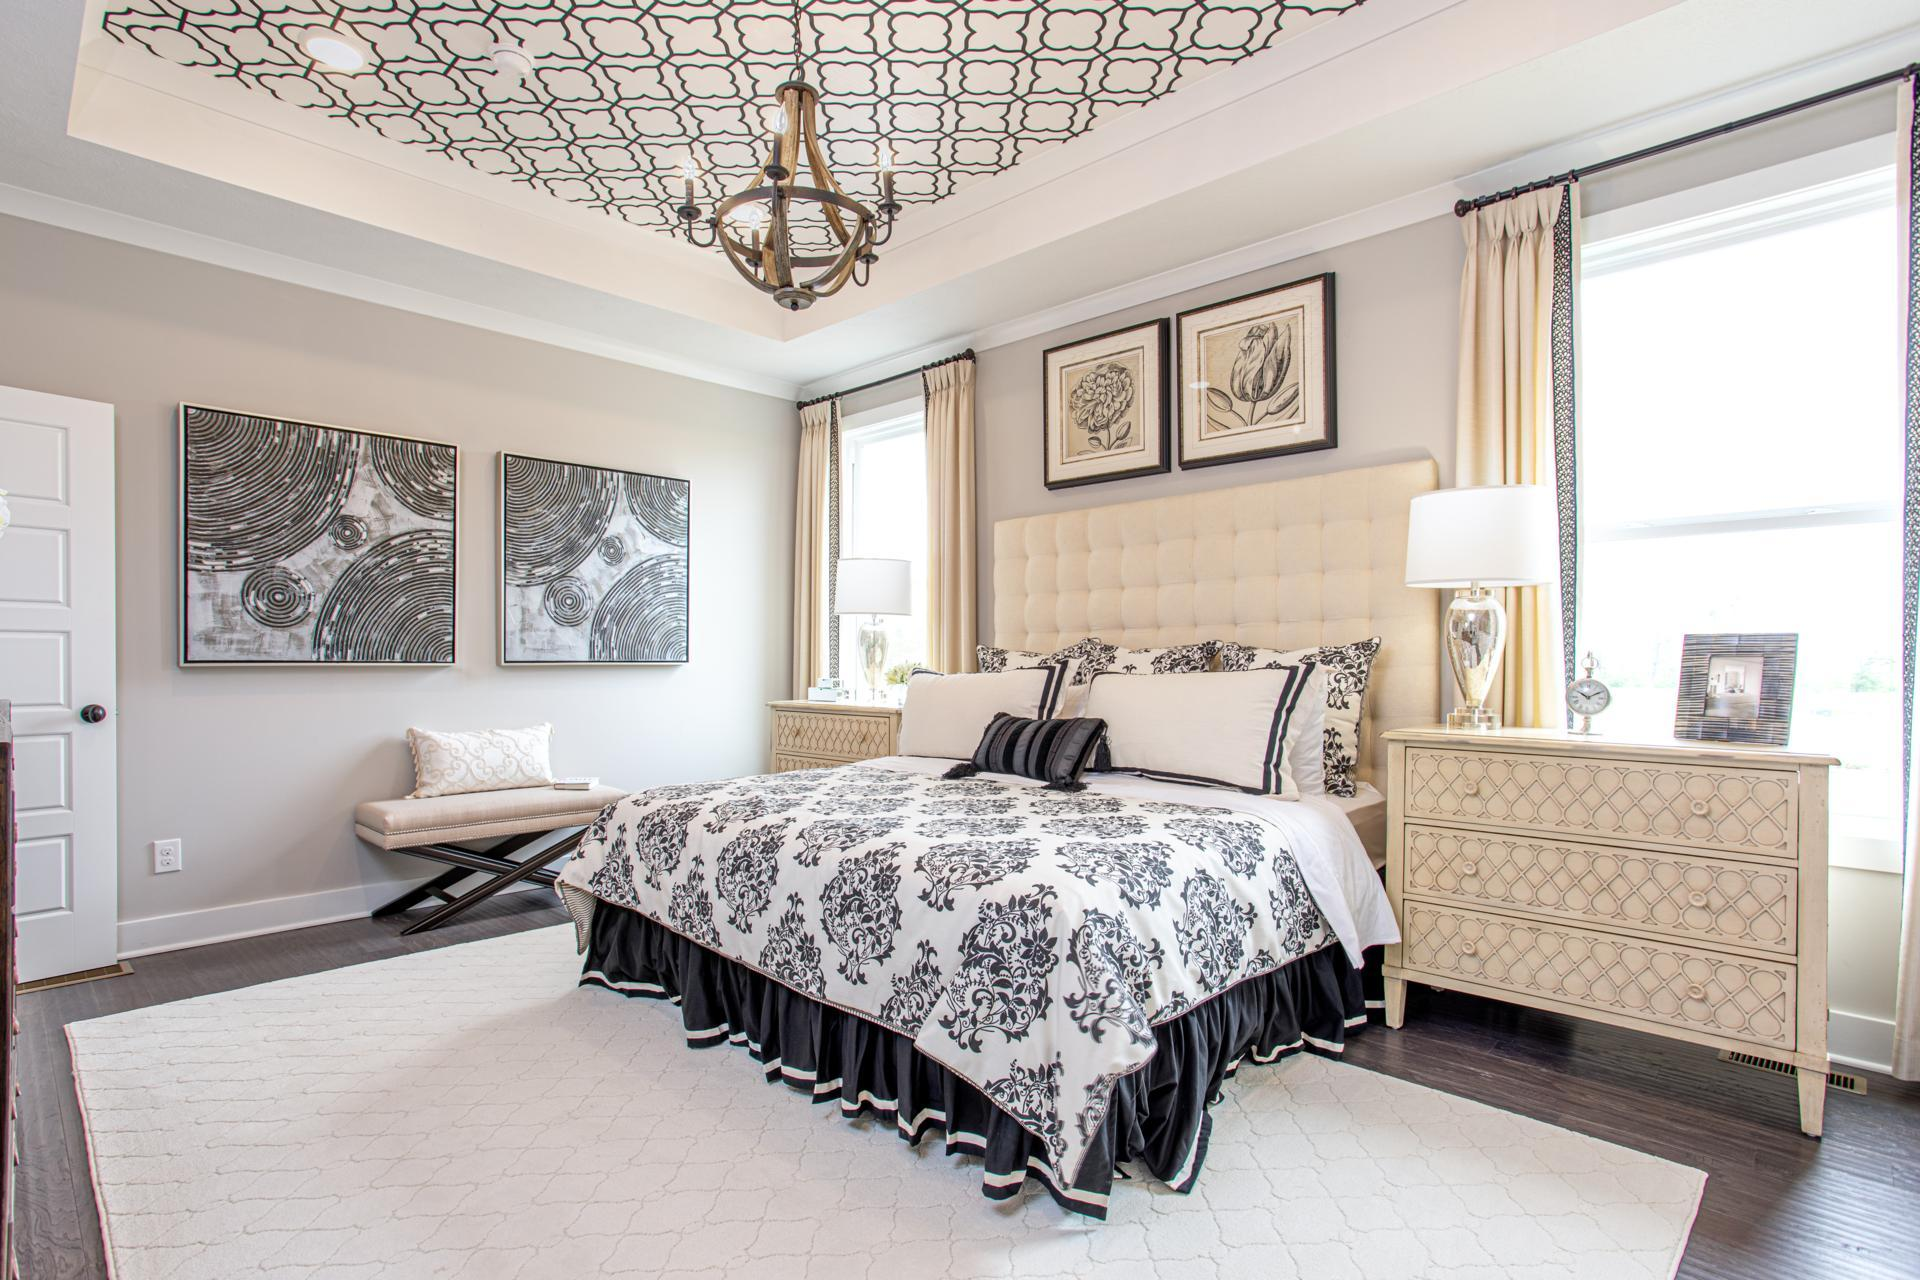 Bedroom featured in the Hollister By Drees Homes in Cleveland, OH